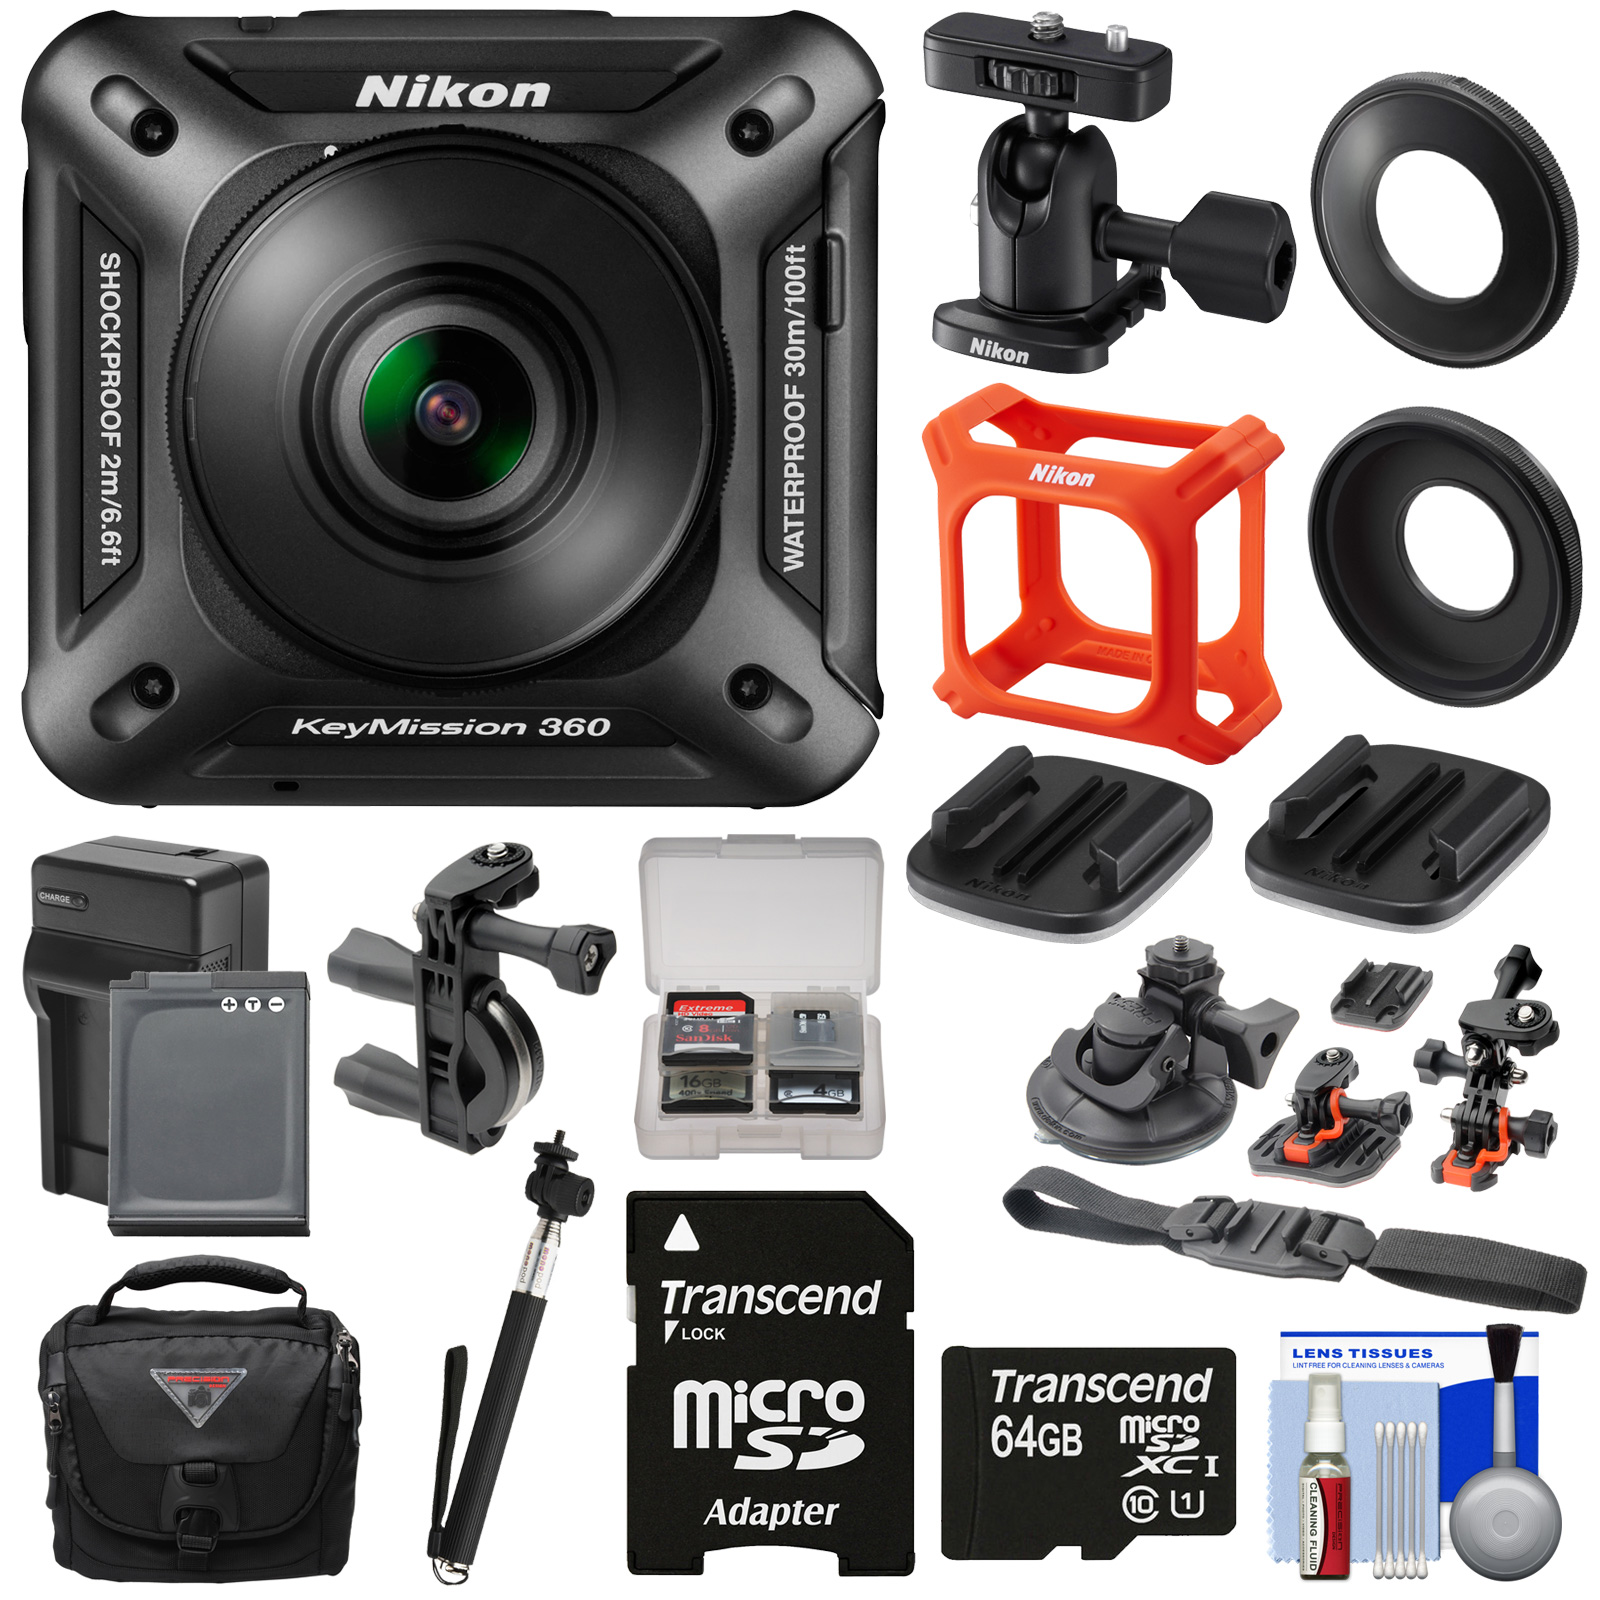 Nikon KeyMission 360 Wi-Fi Shock & Waterproof 4K Video Action Camera Camcorder + Action Mounts + 64GB Card + Battery/Charger + Case + Selfie Stick Kit